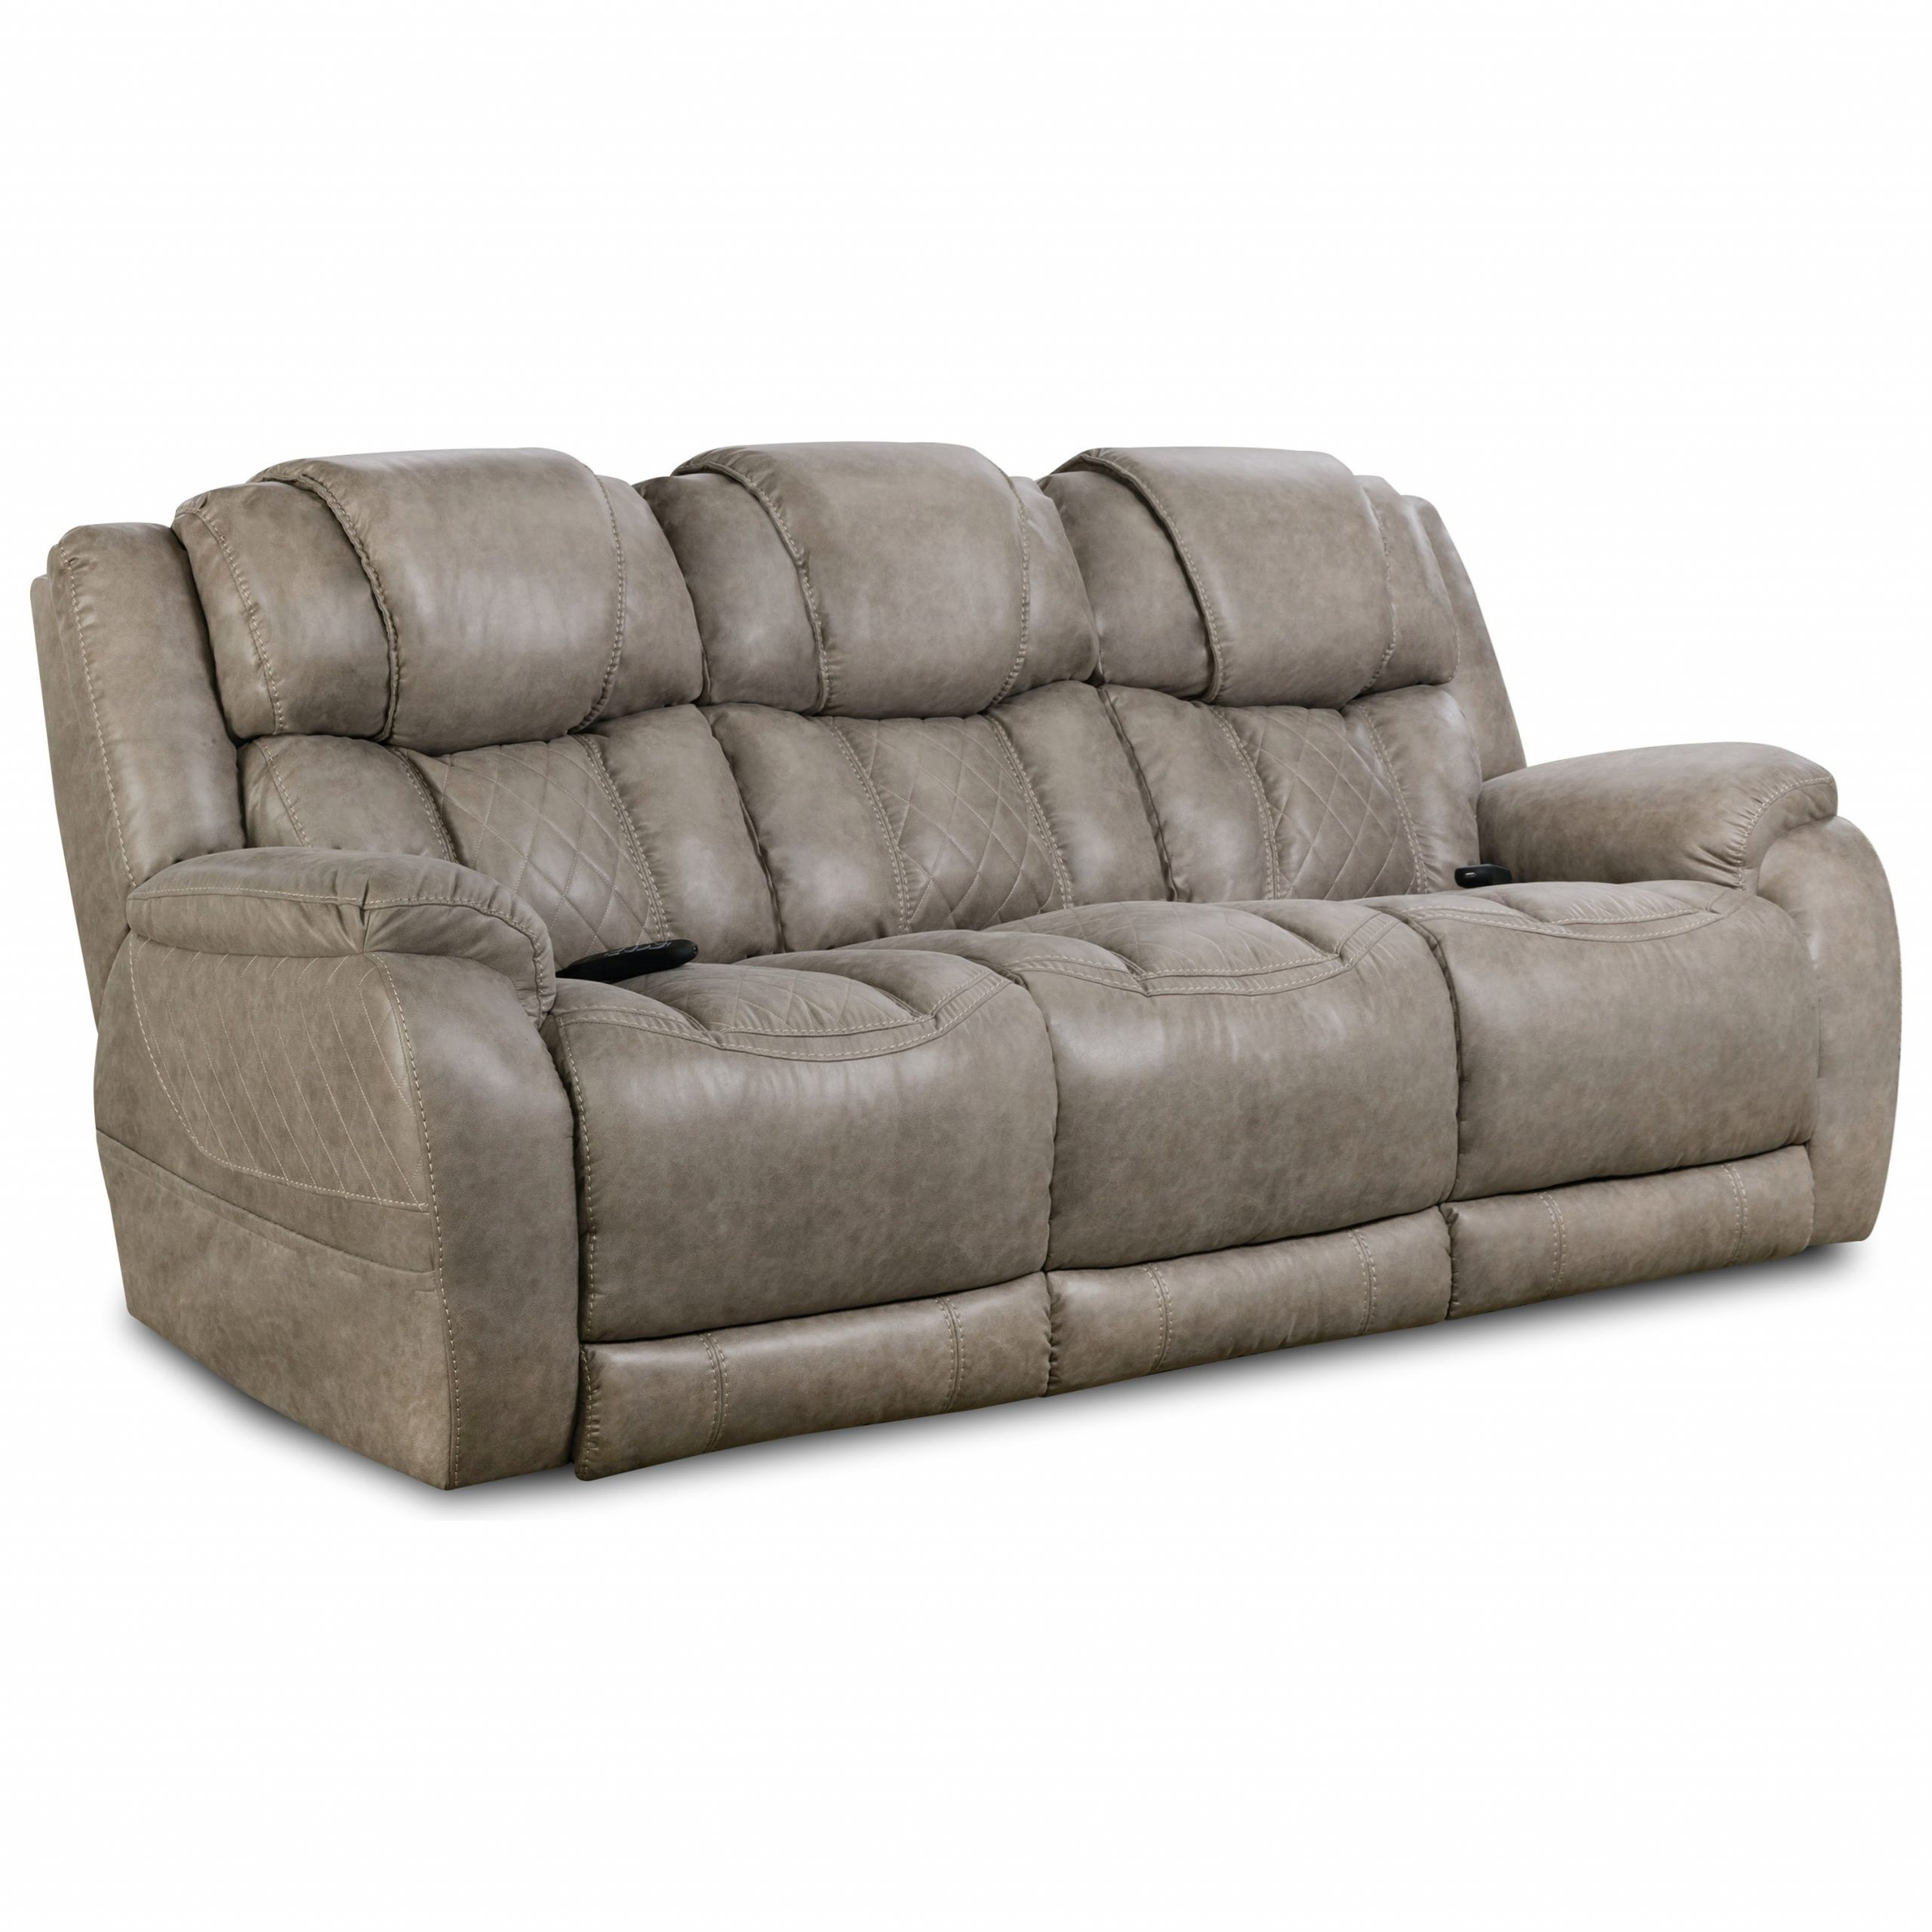 Homestretch 174 Casual Style Double Reclining Power Sofa In Raven Power Reclining Sofas (View 9 of 15)